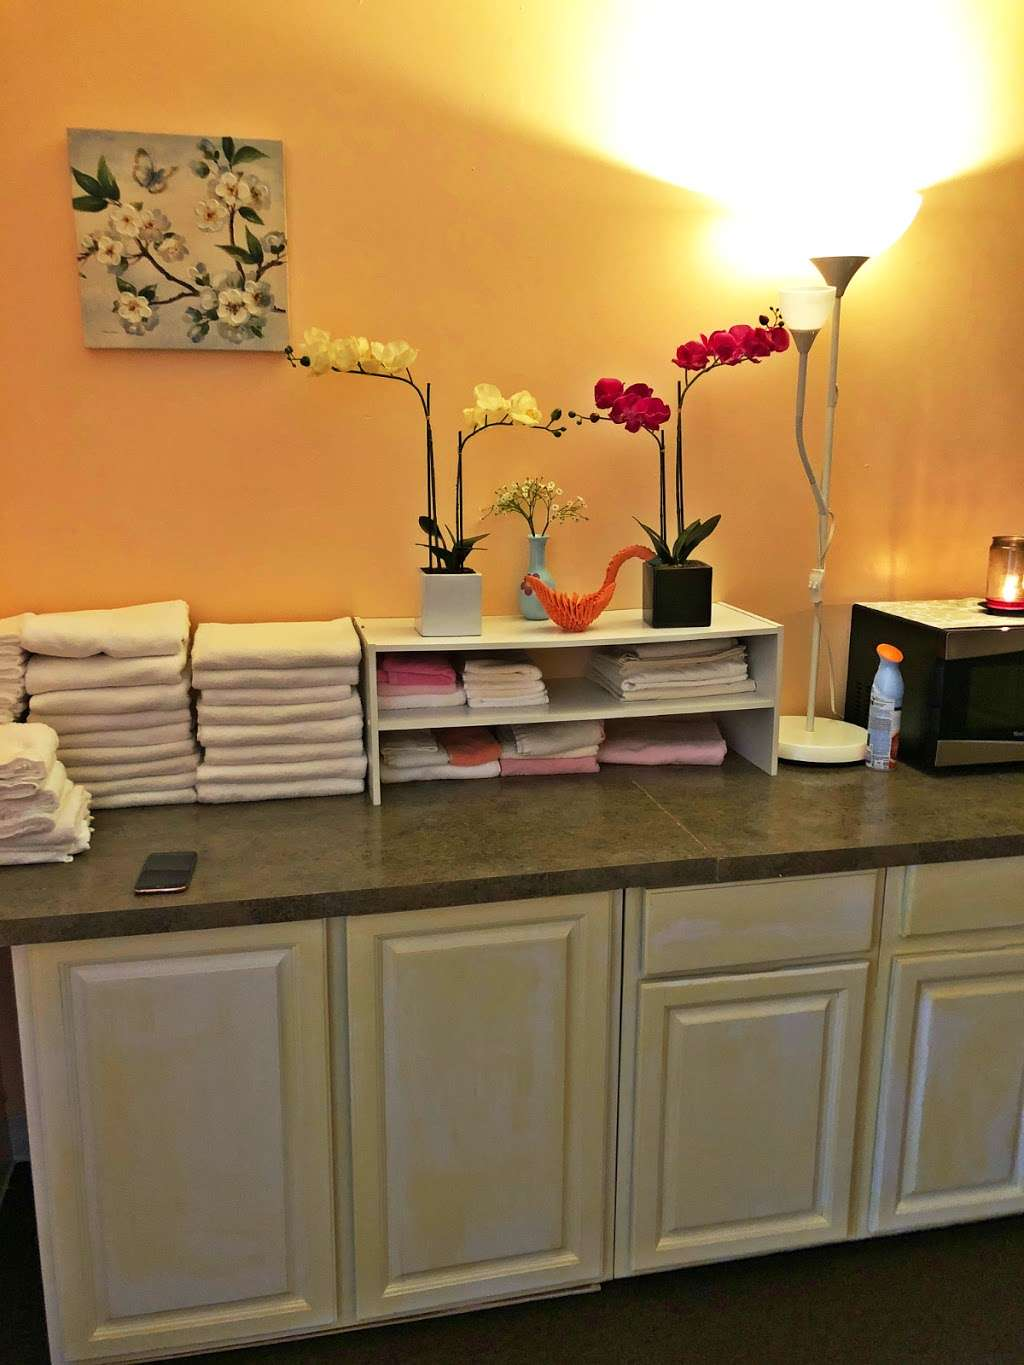 Stress Relief Spa - spa  | Photo 2 of 10 | Address: 2047 S Black Horse Pike, Williamstown, NJ 08094, USA | Phone: (856) 503-9969